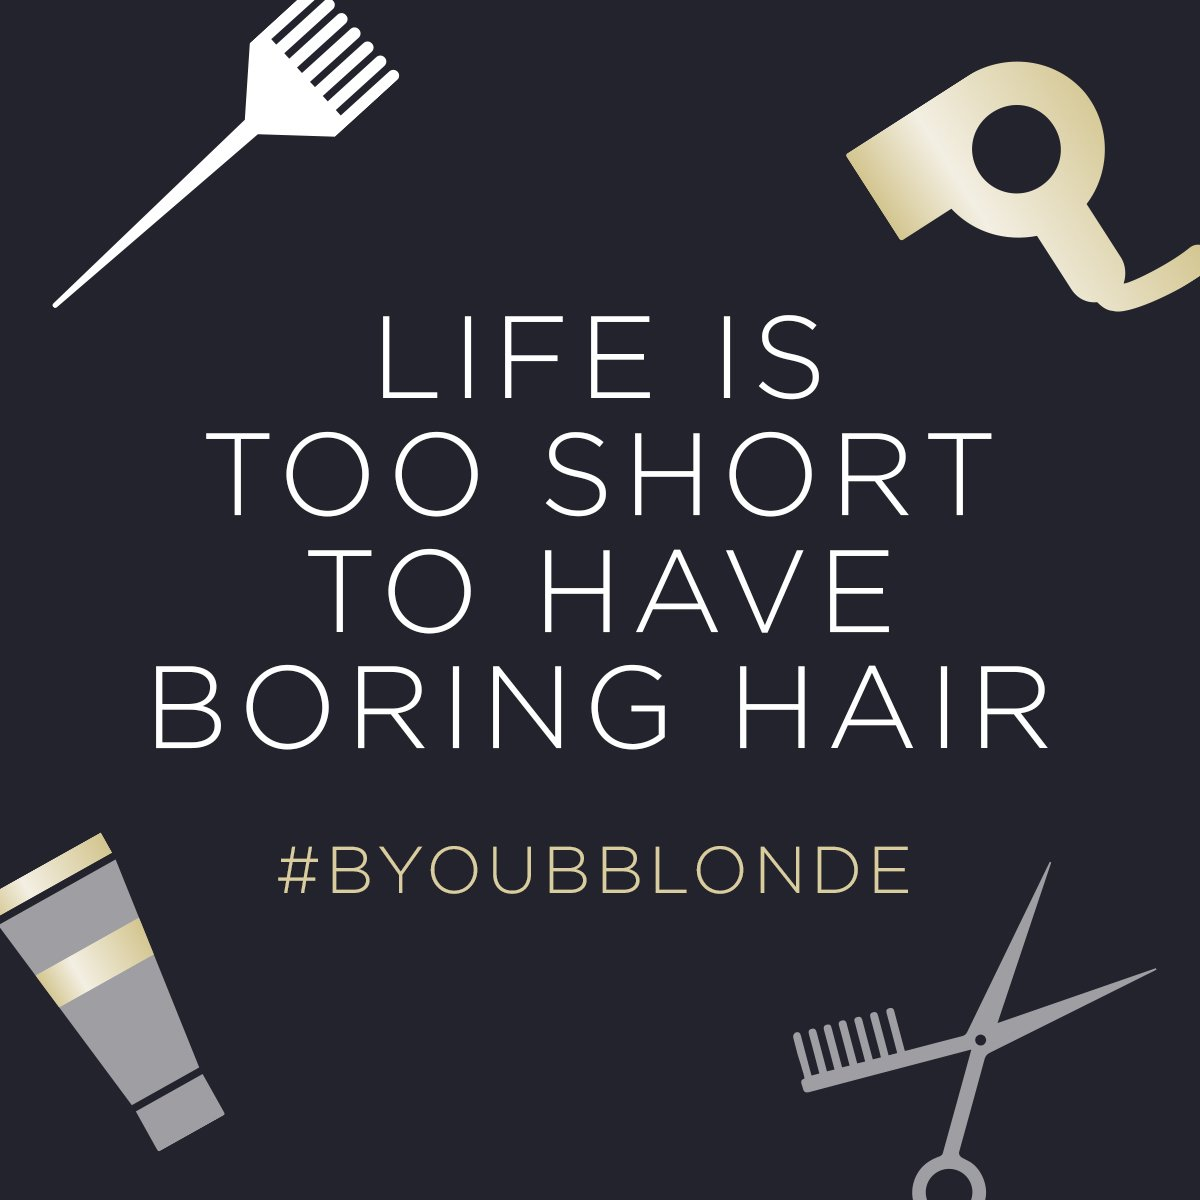 Image for So switch it up - cut it or dye it, just make sure you're LOVING it ????#hair #quote https://t.co/cTF0ifPt3c